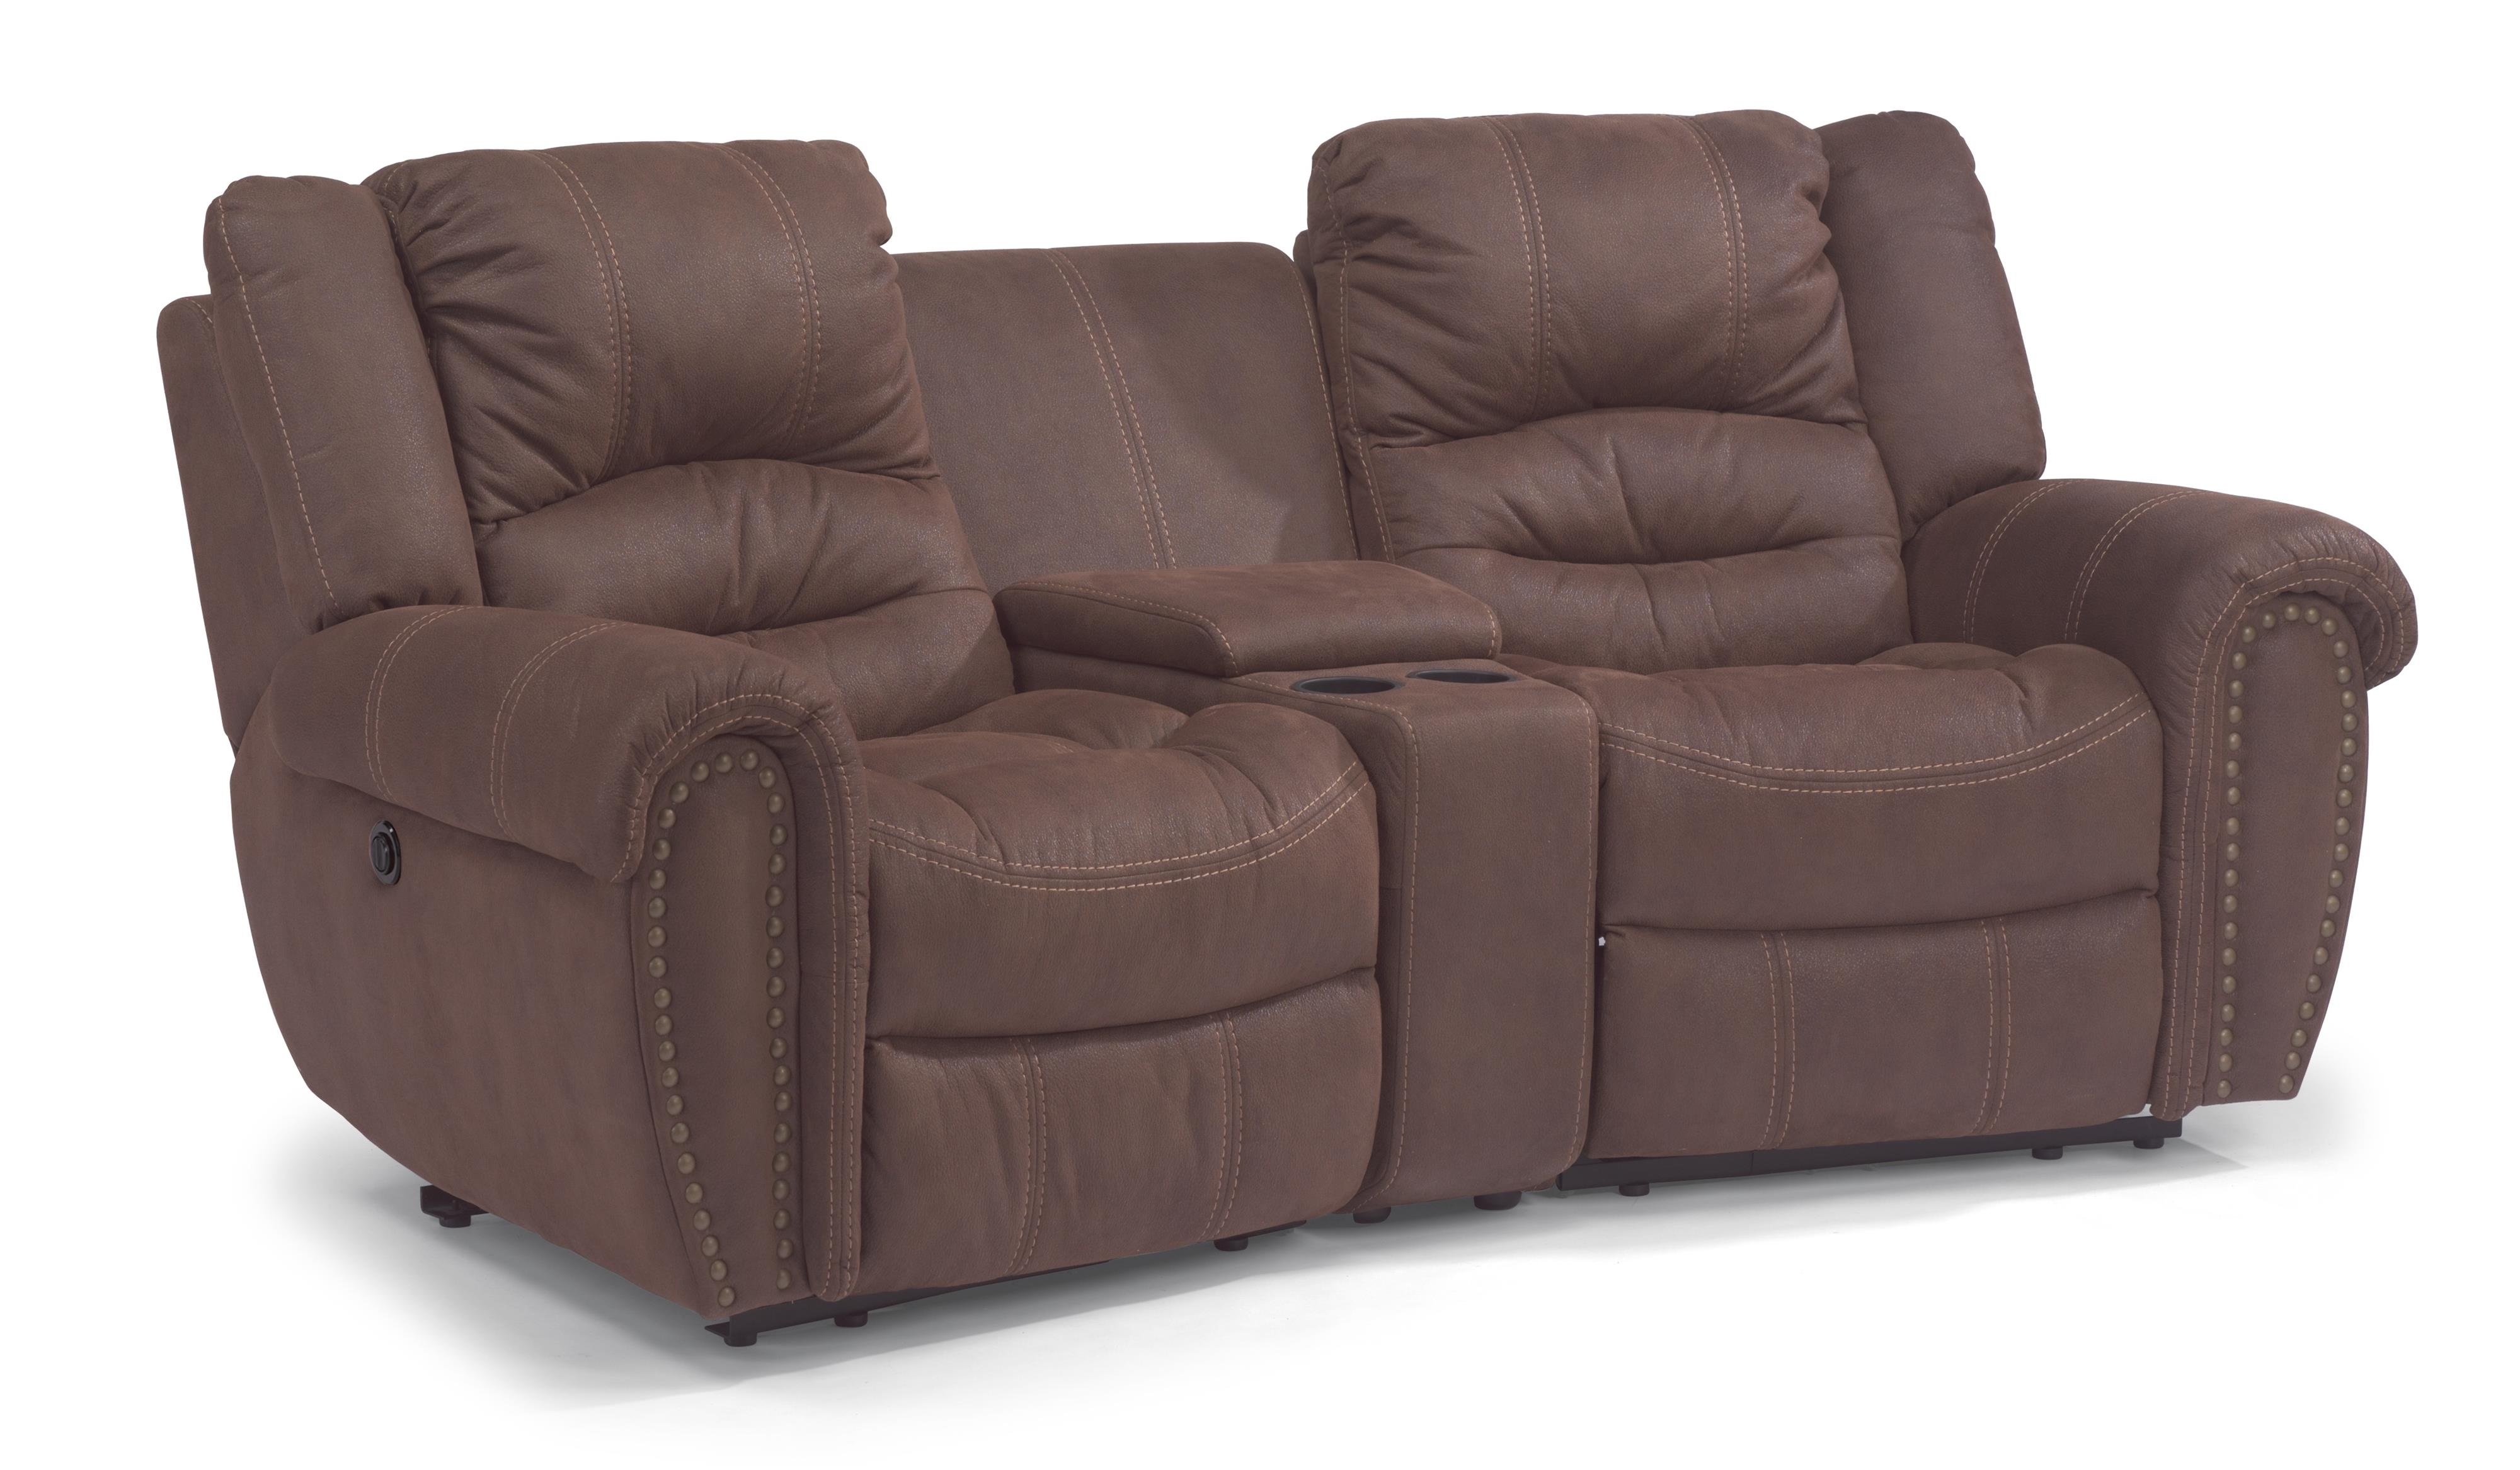 3 pc sectional sofa with recliners creative and unusual designs flexsteel latitudes new town three power piece reclining